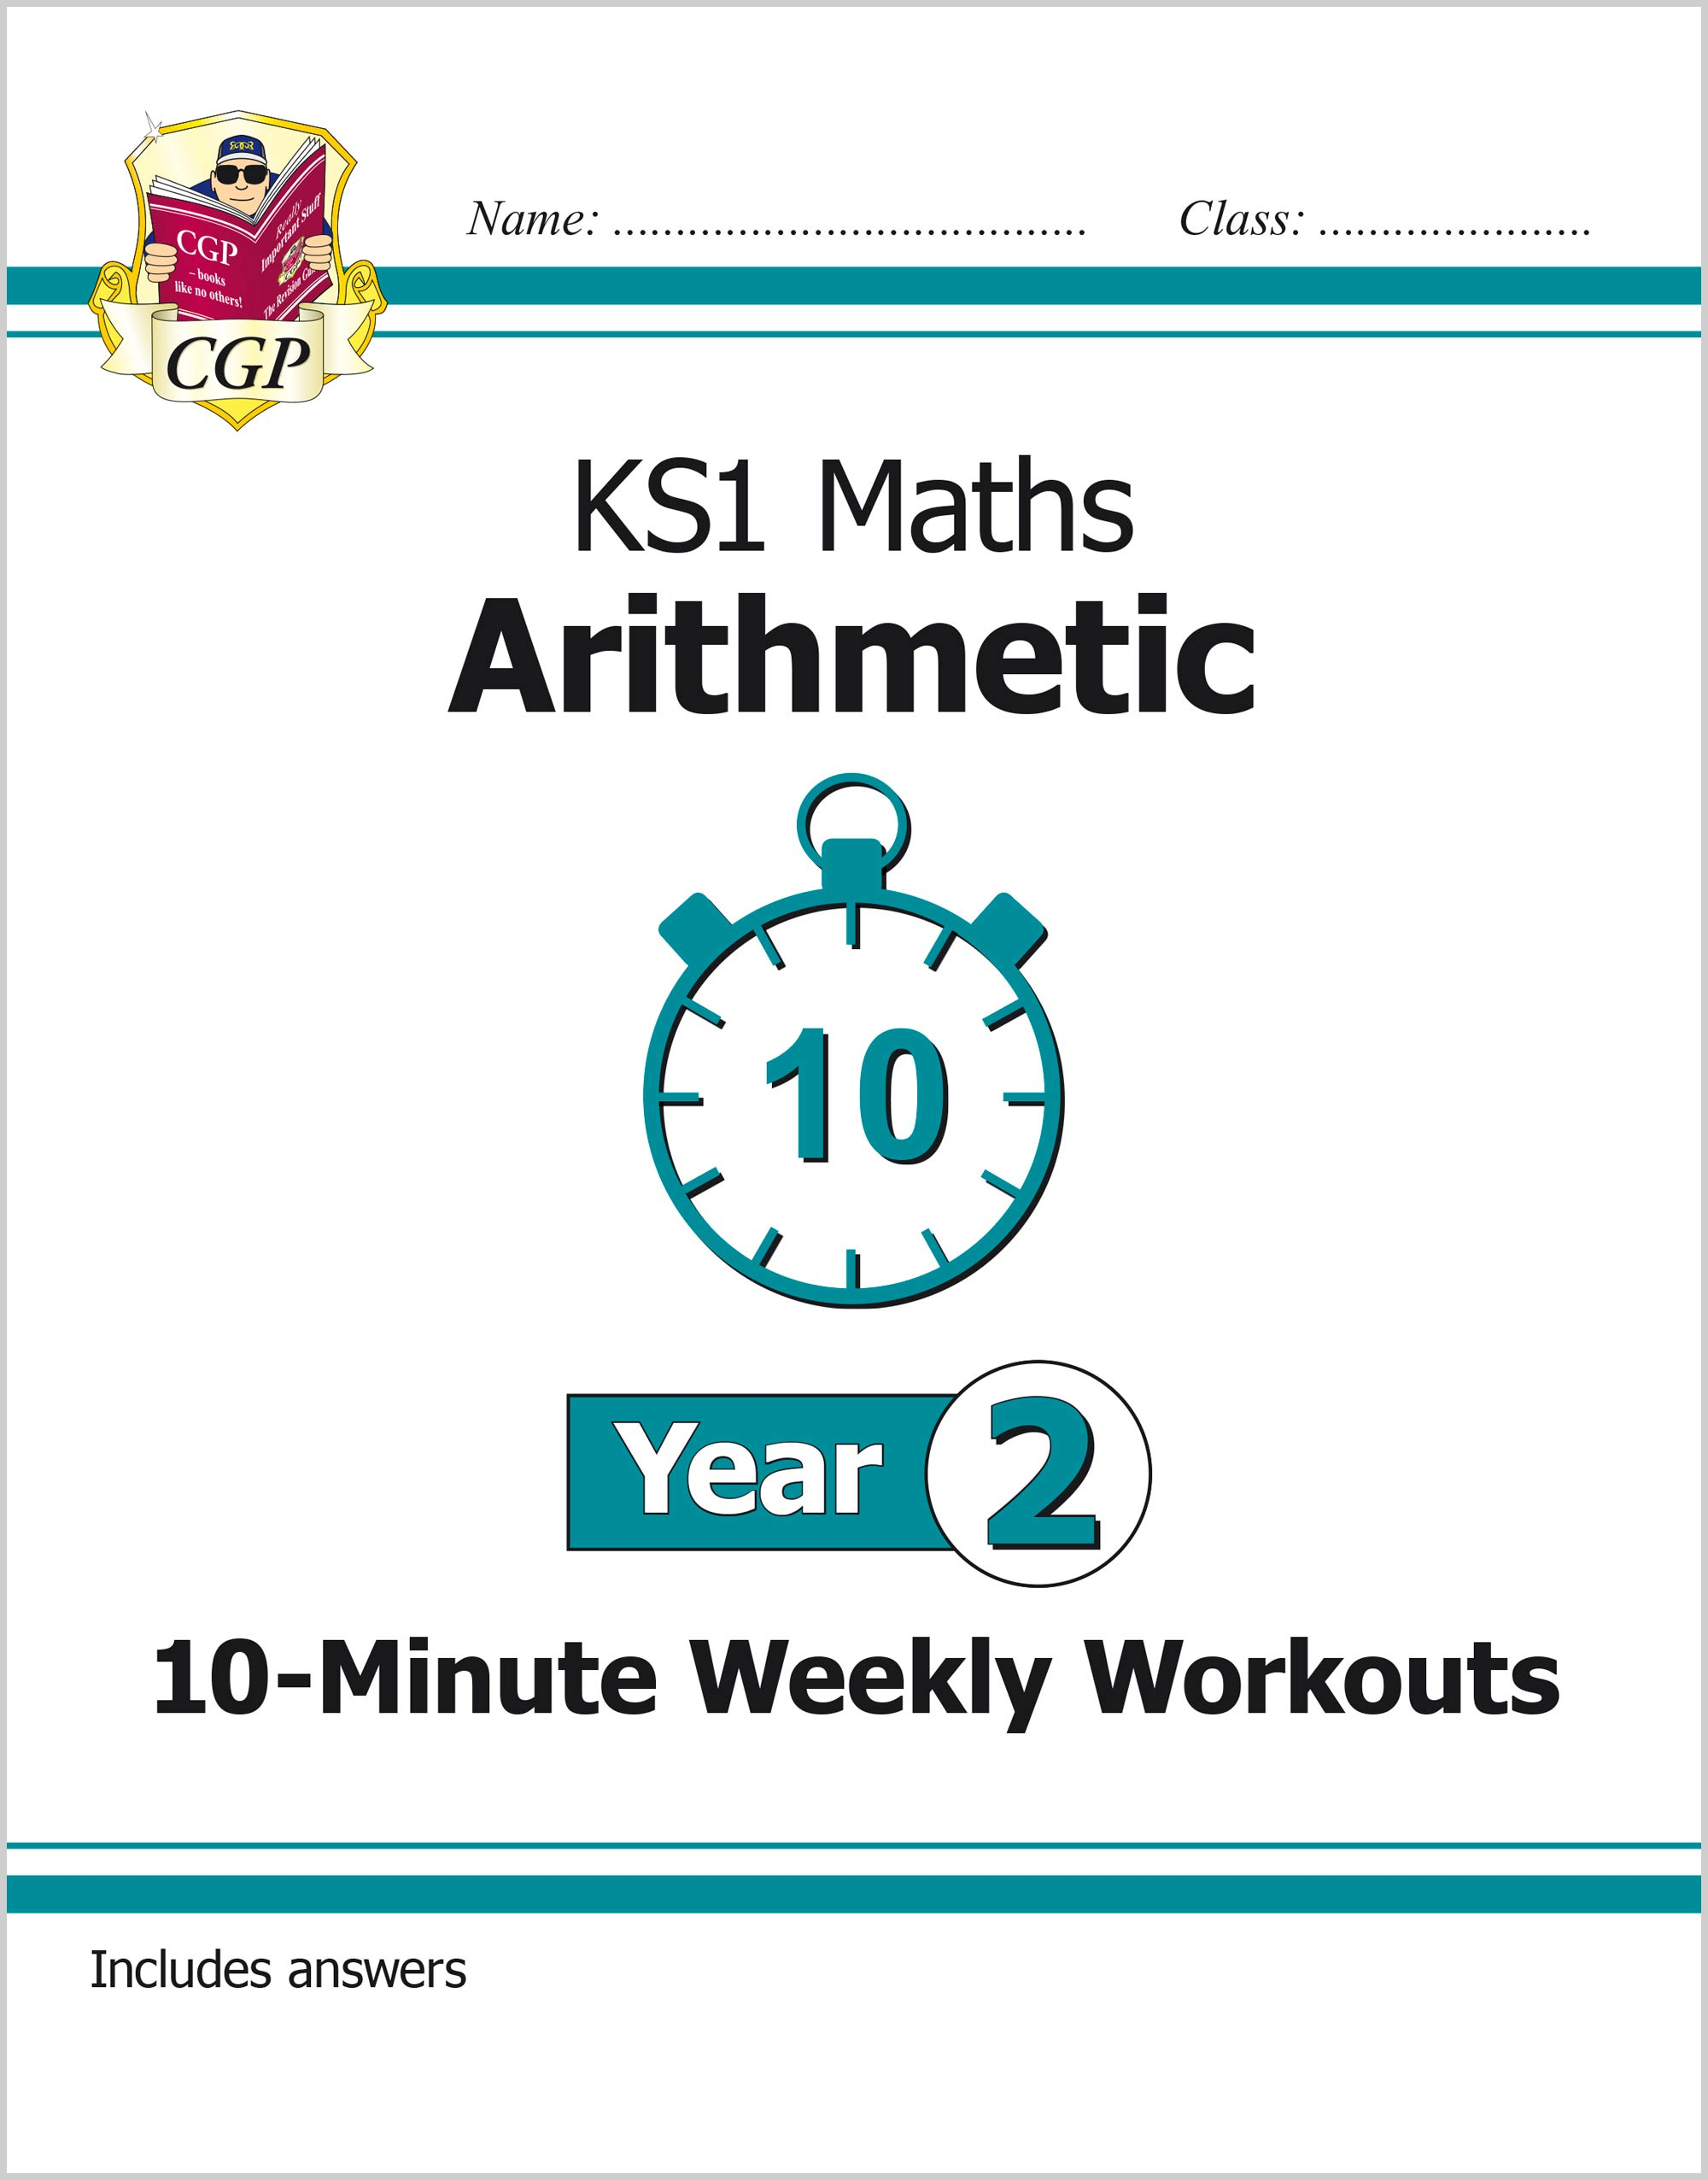 M2ARXW11 - New KS1 Maths 10-Minute Weekly Workouts: Arithmetic - Year 2